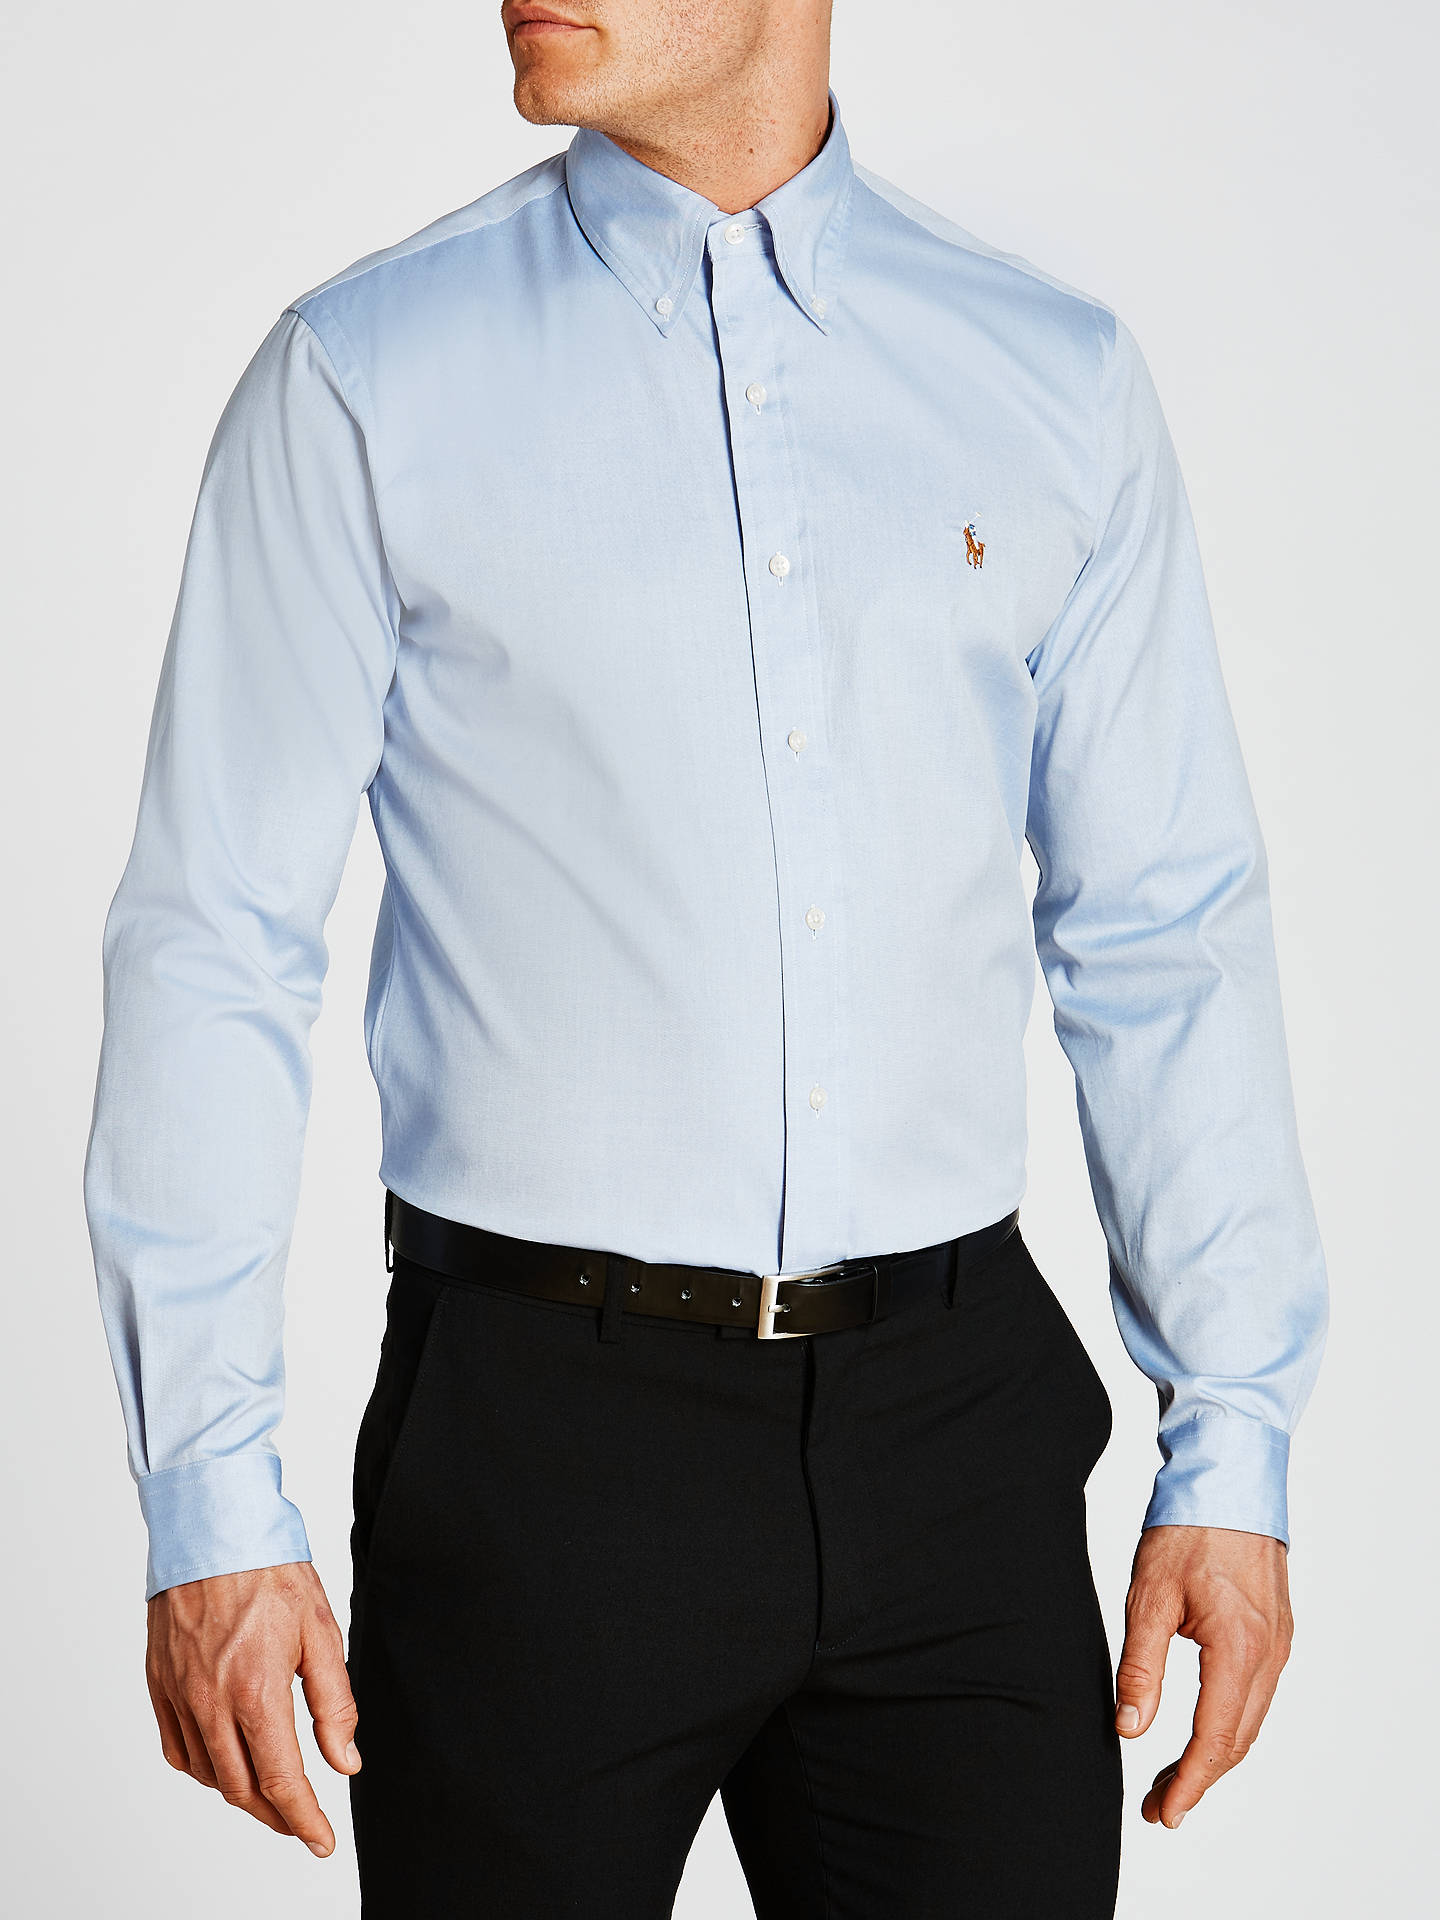 BuyPolo Ralph Lauren Oxford Shirt, Blue, 15.5 Online at johnlewis.com ... 9d8189d01ba4